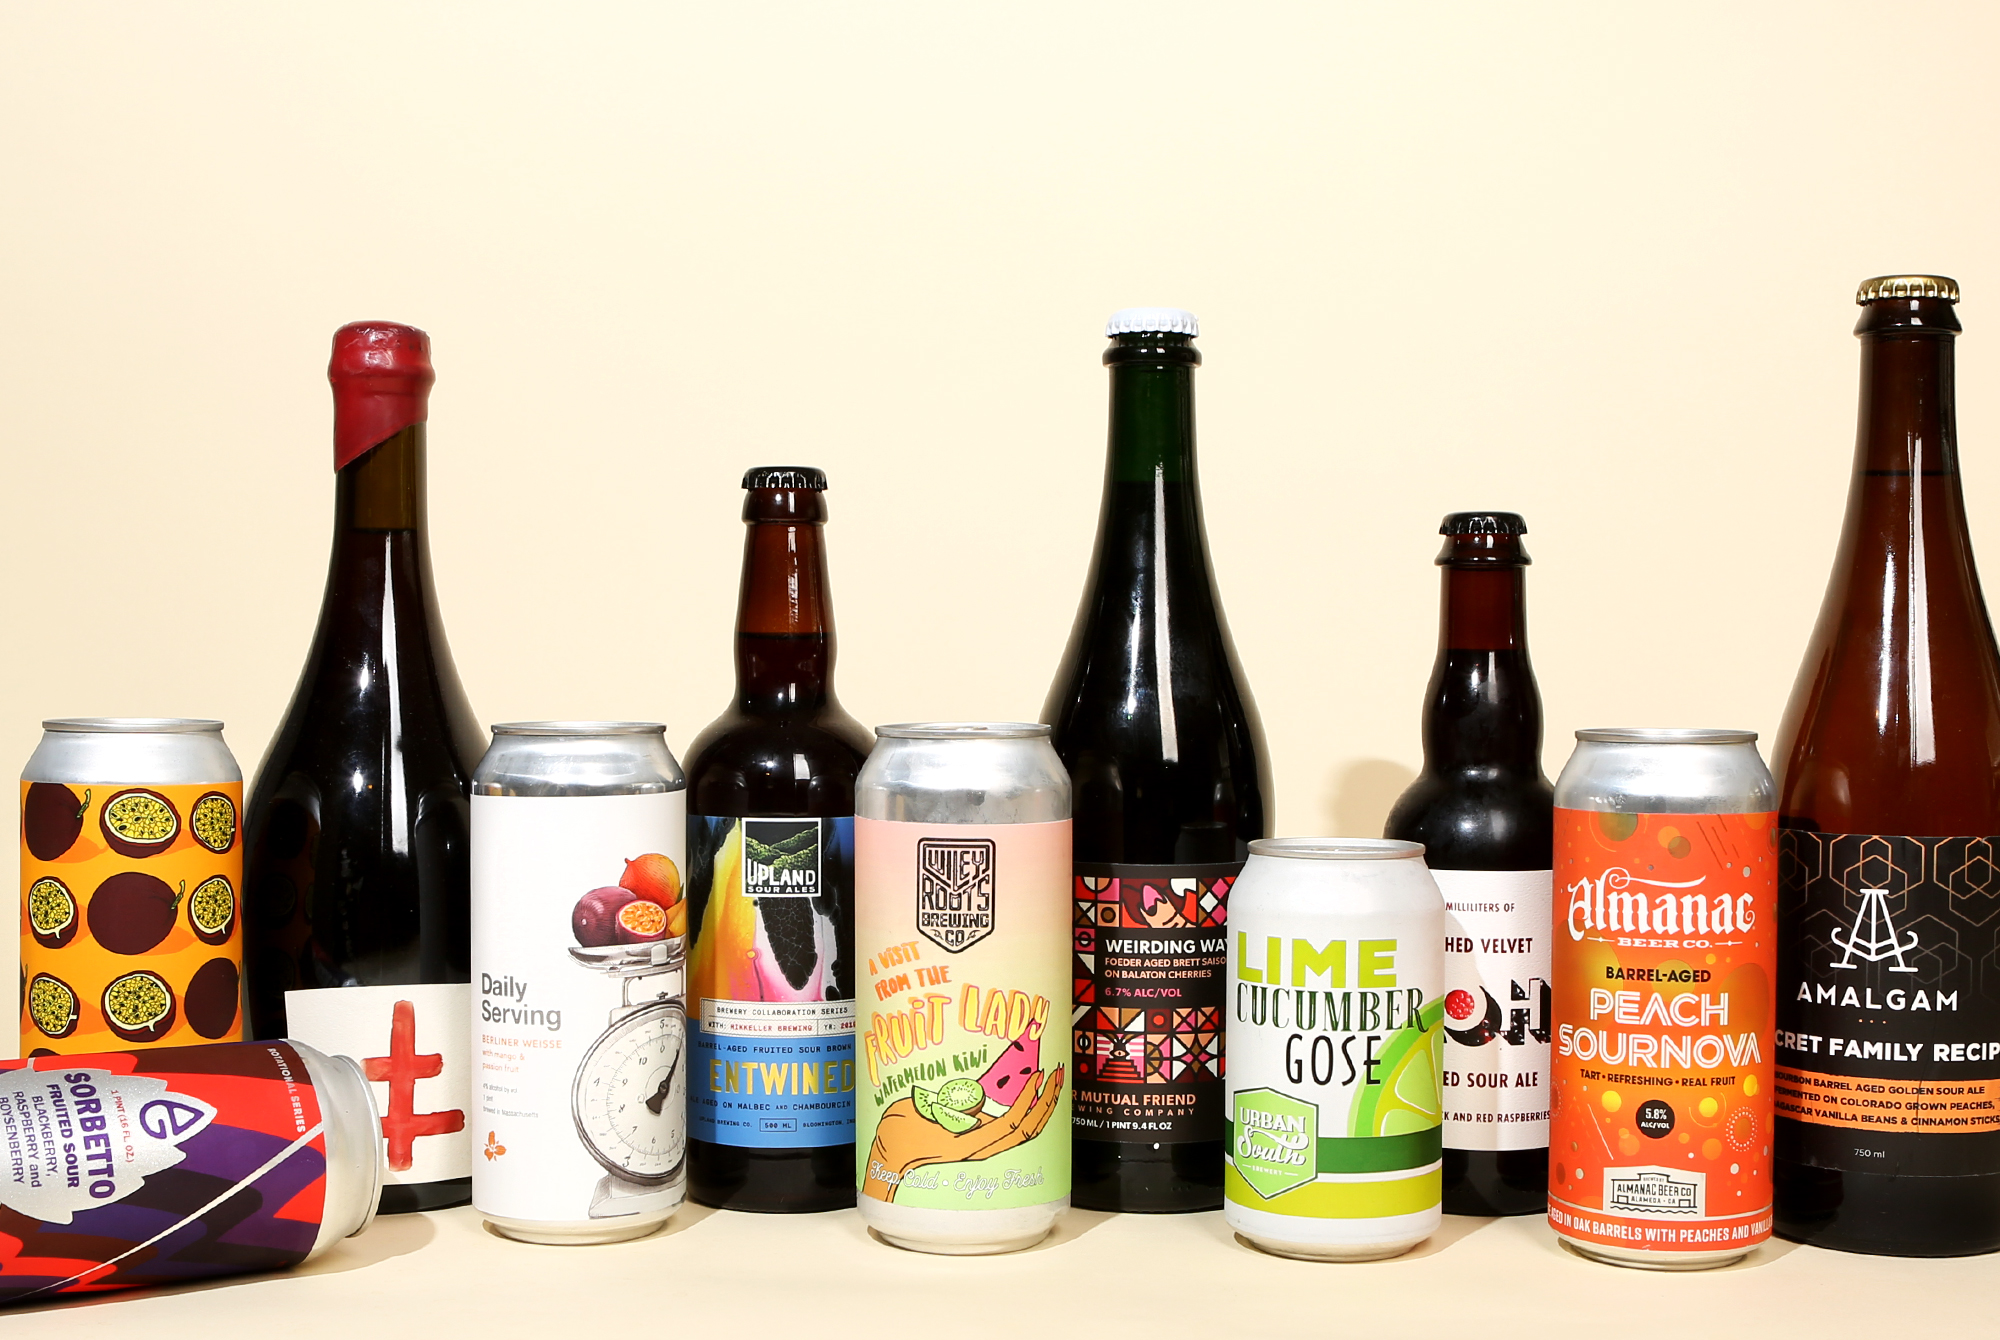 Should Sour Beer Have its Own Category?